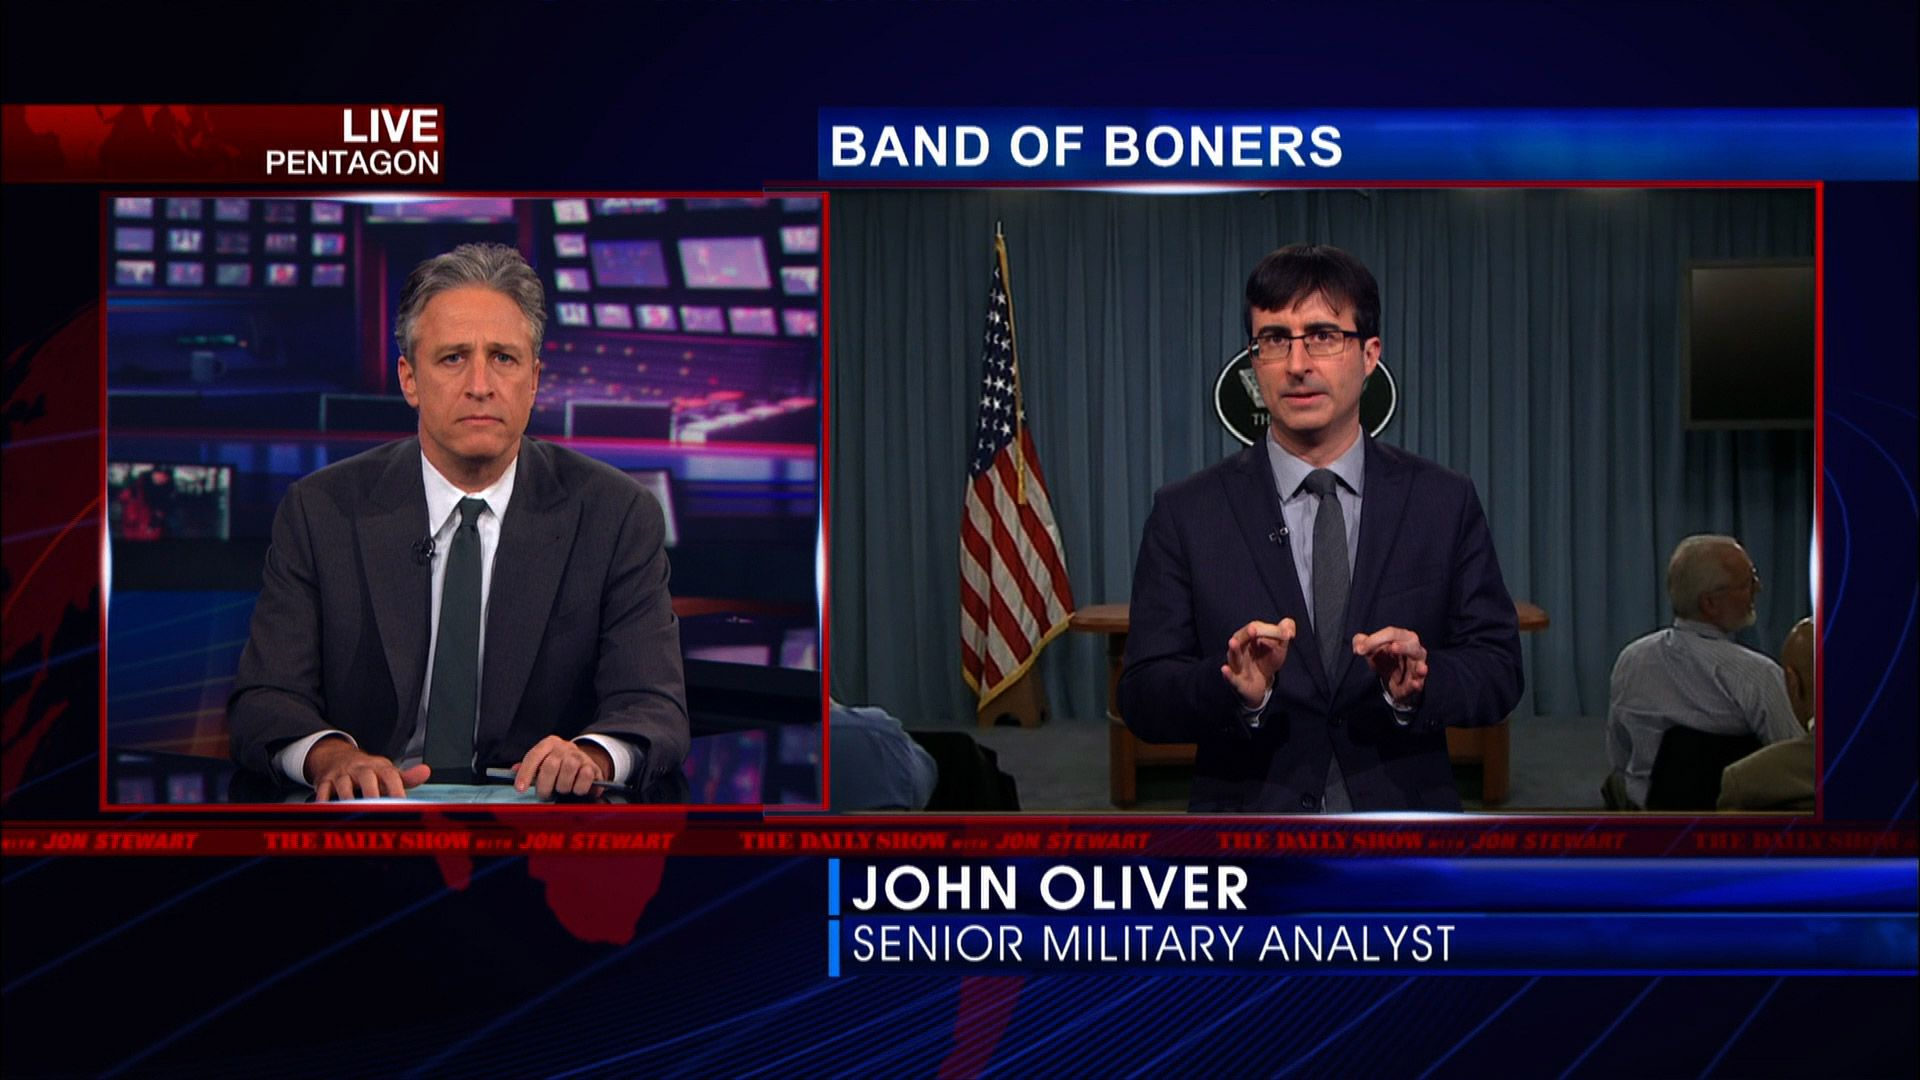 band of boners - the daily show with jon stewart (video clip